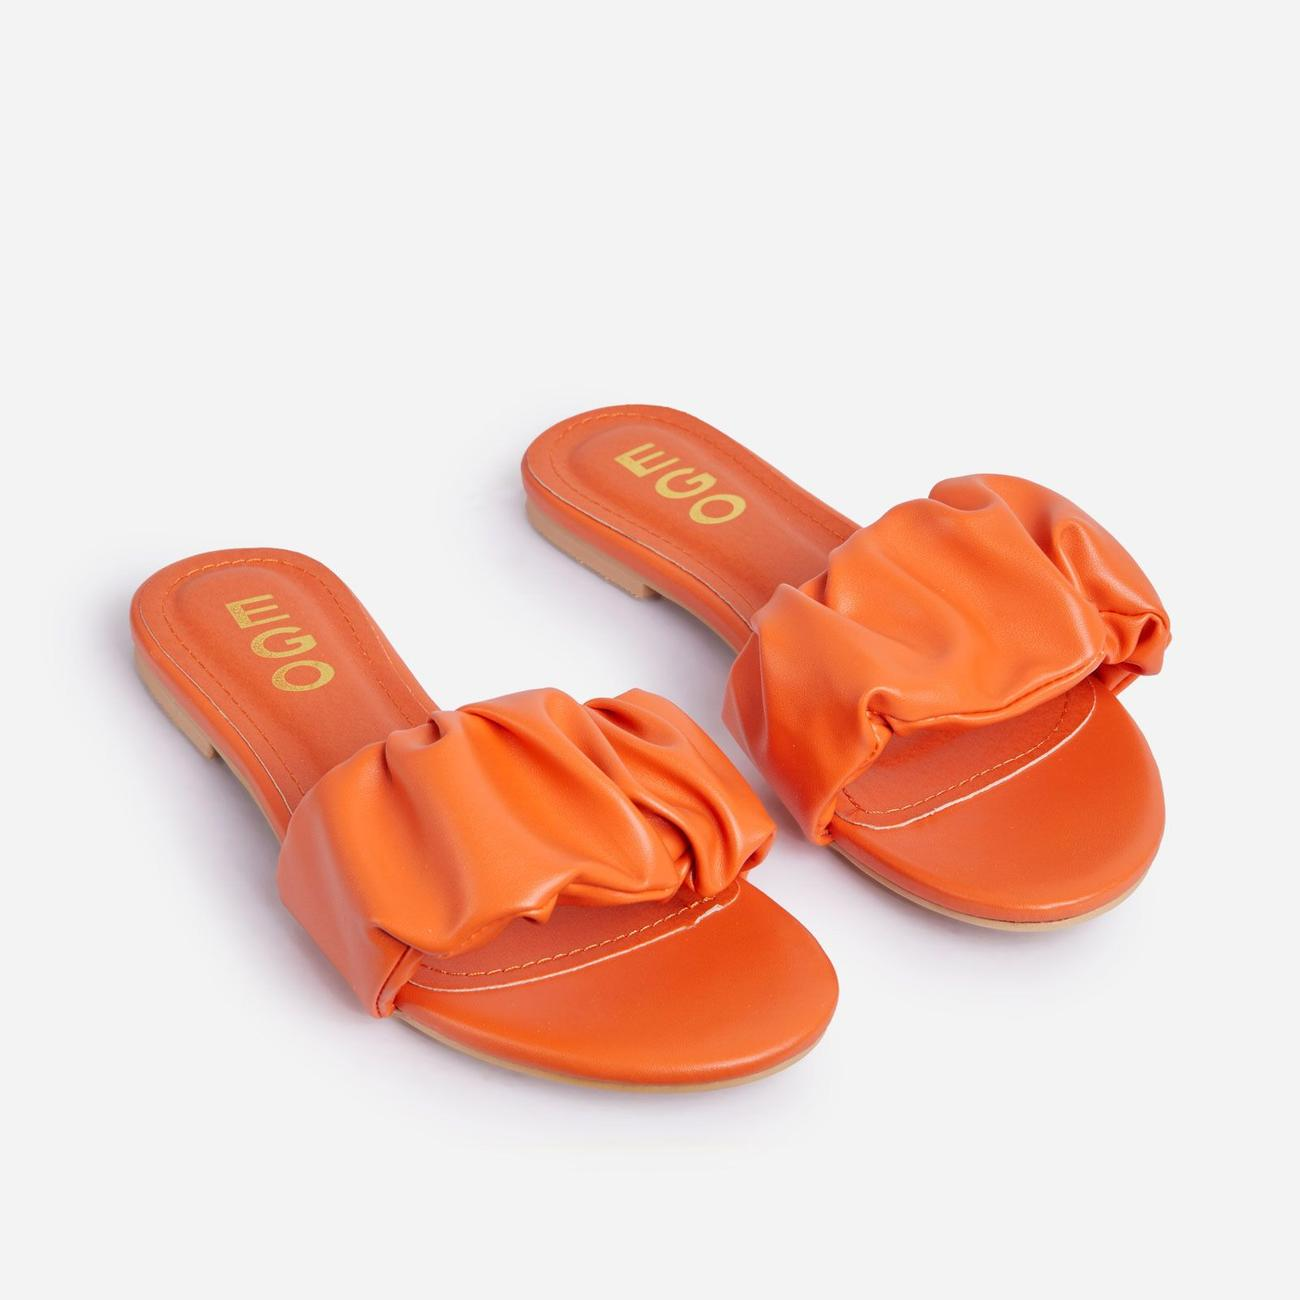 Tender Ruched Flat Slider Sandal In Orange Faux Leather Image 2